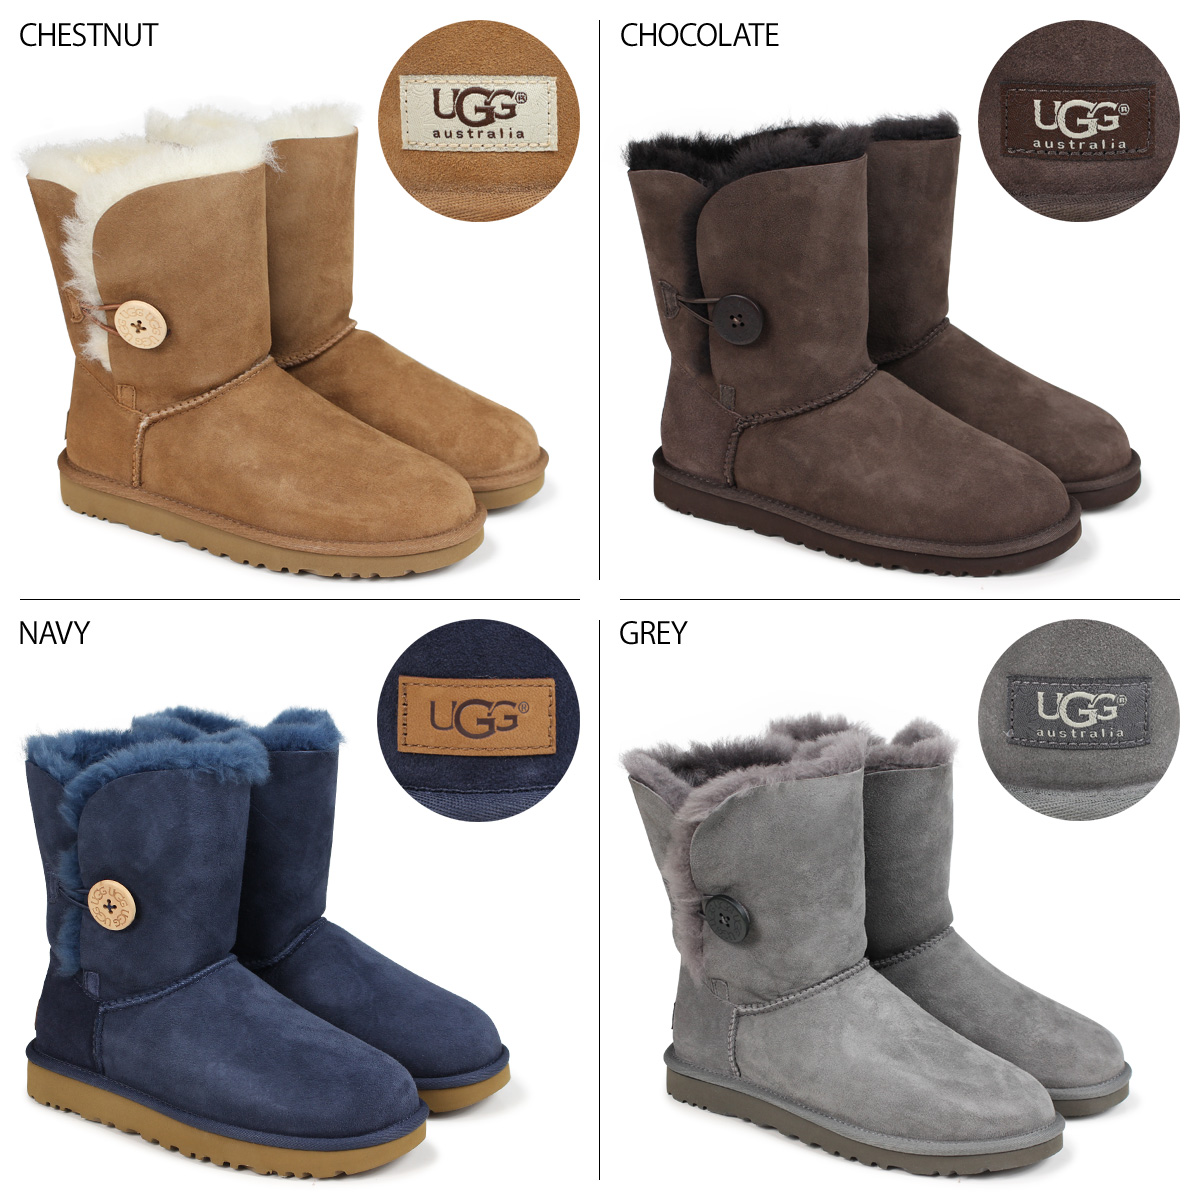 247ad961757 ugg bailey button boot sand hdmi